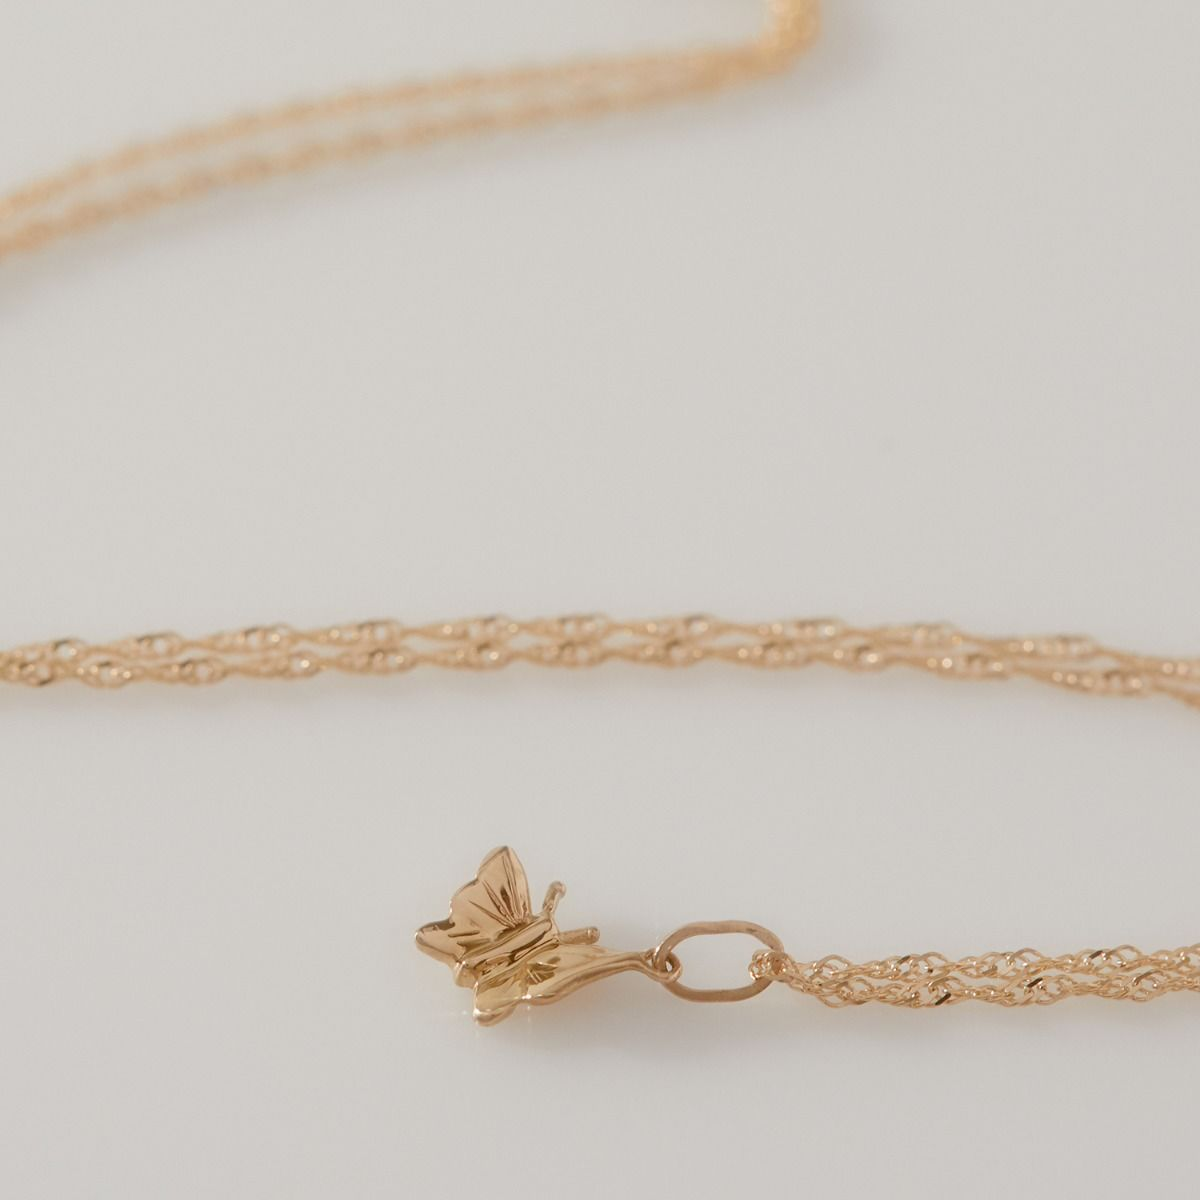 14K Yellow Gold Butterfly Charm Bracelet Necklace Catbird Brooklyn